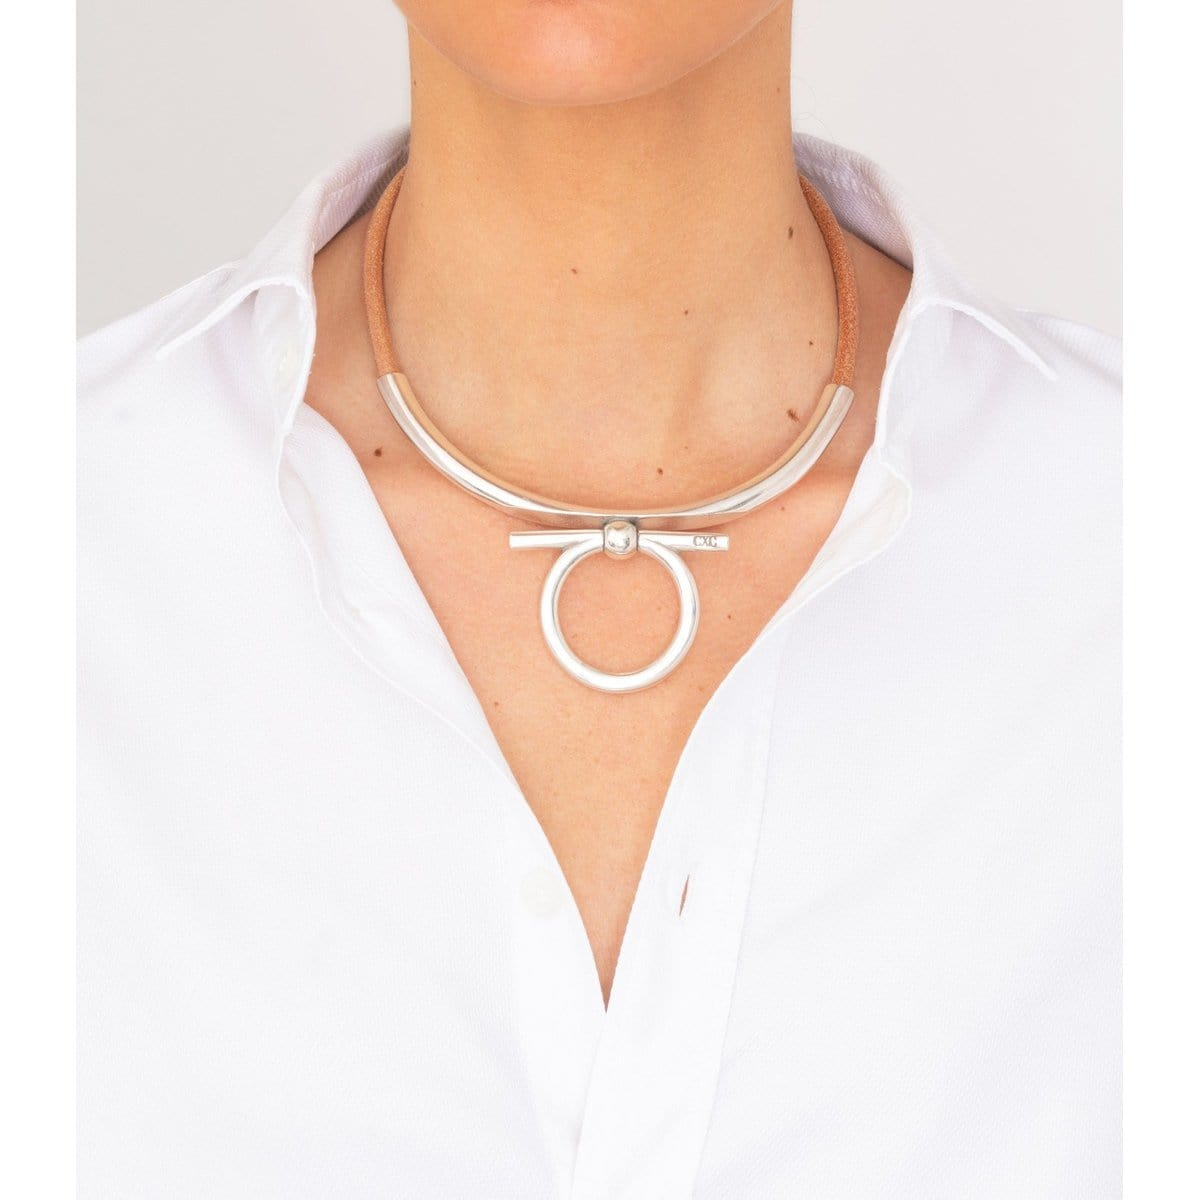 Sterling Silver Plated Leather Necklace - N0067 MCA00-CXC-Renee Taylor Gallery